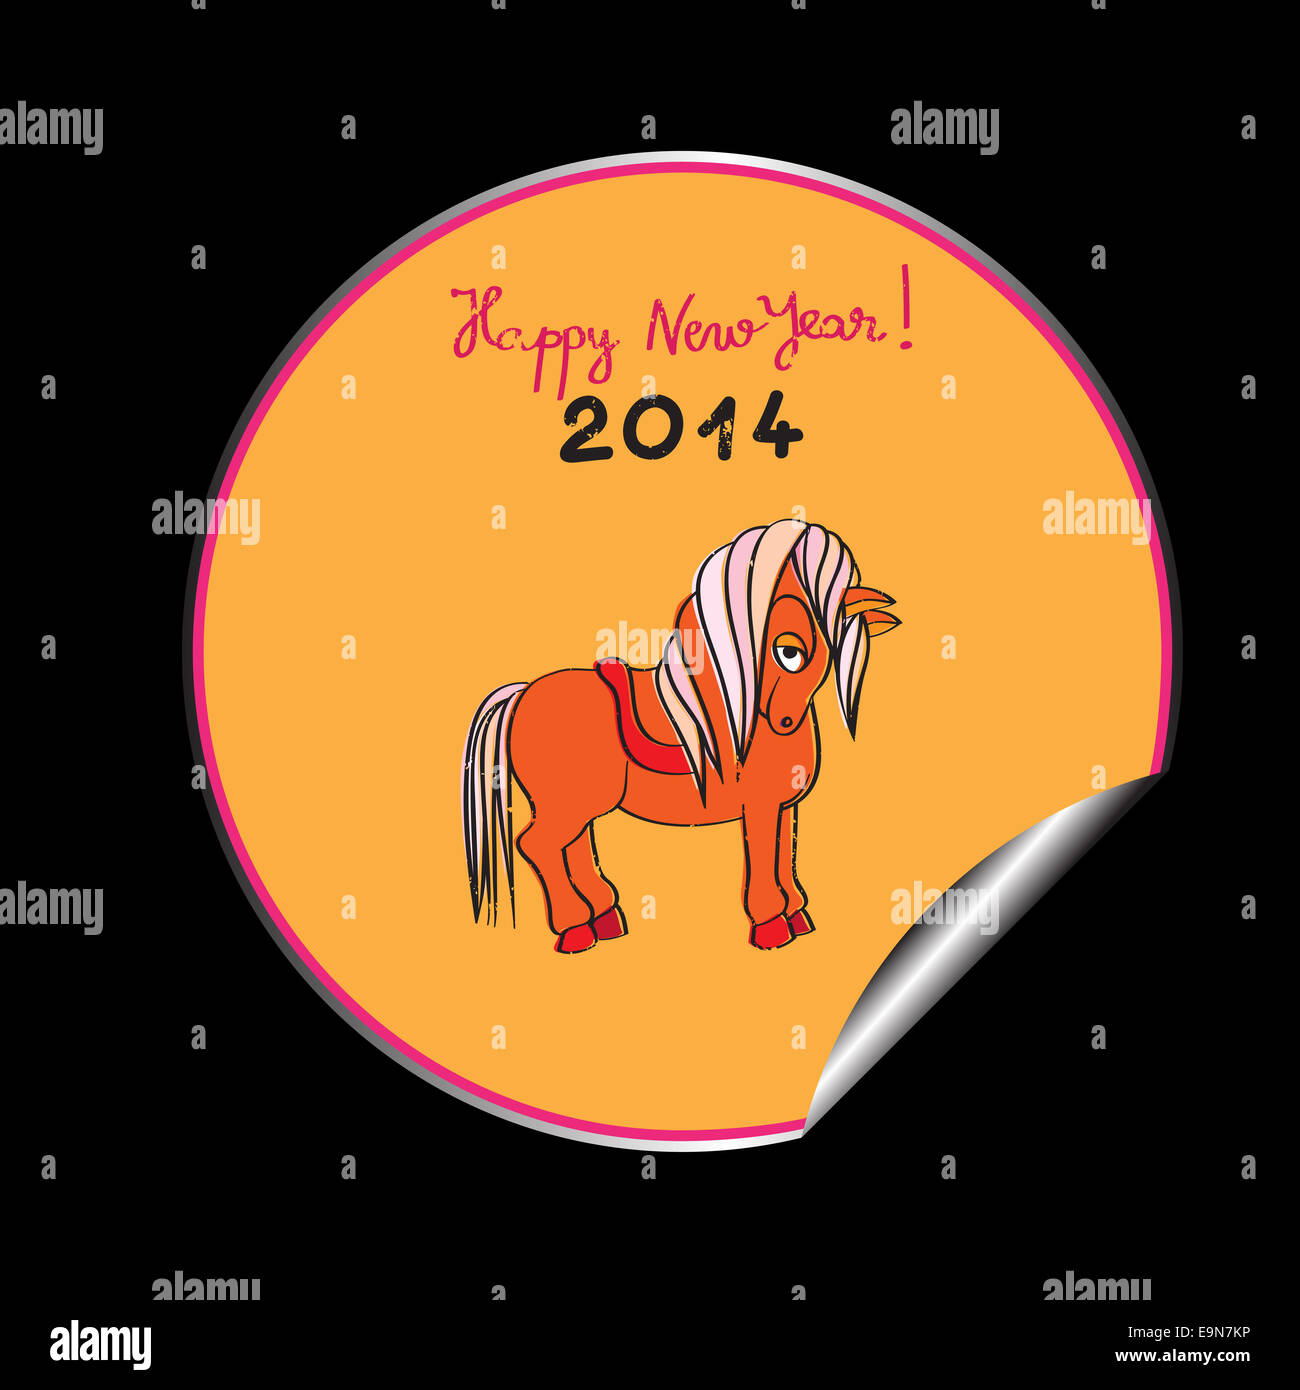 Happy New Year Horse Images 24